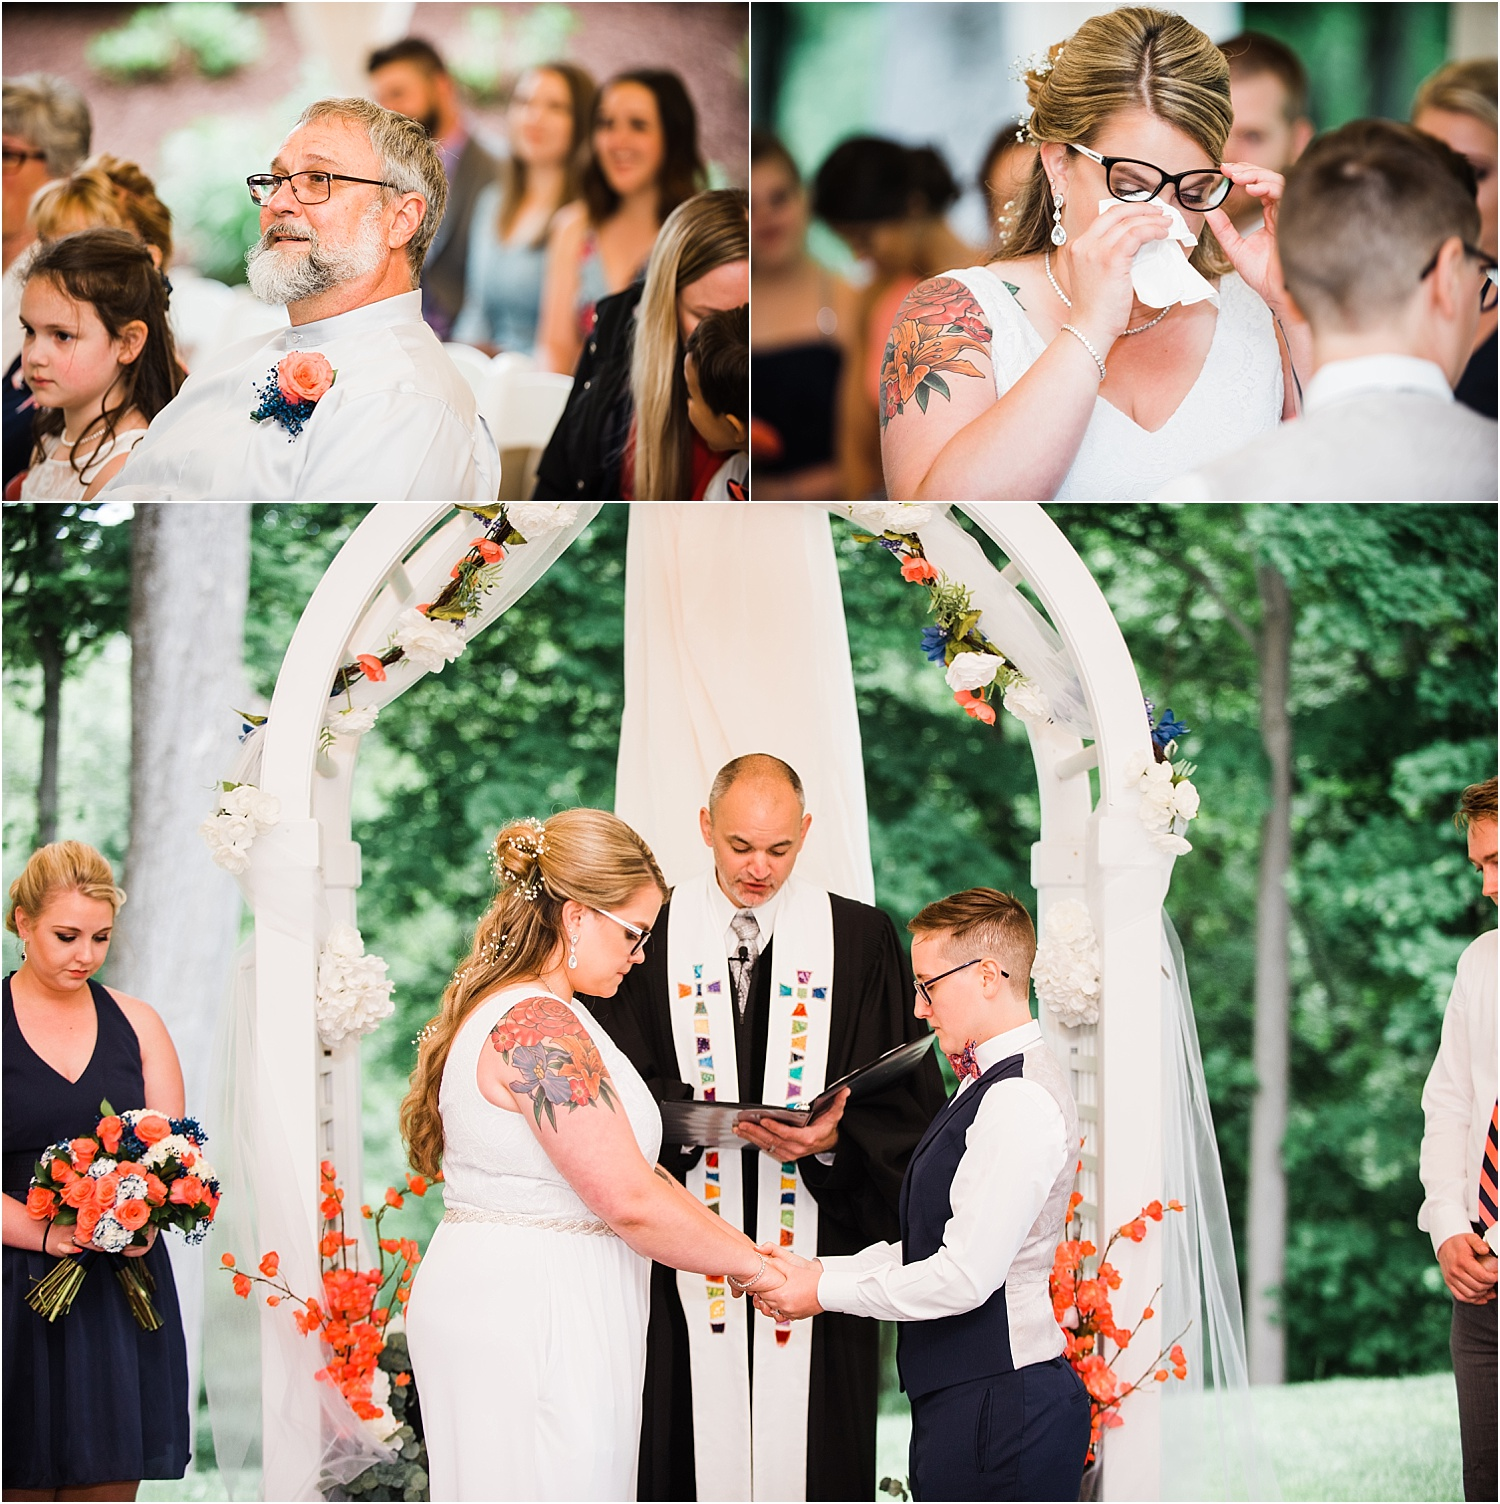 The_Riverview_Simsbury_Connecticut_Wedding_LGBT_Weddings_032.jpg